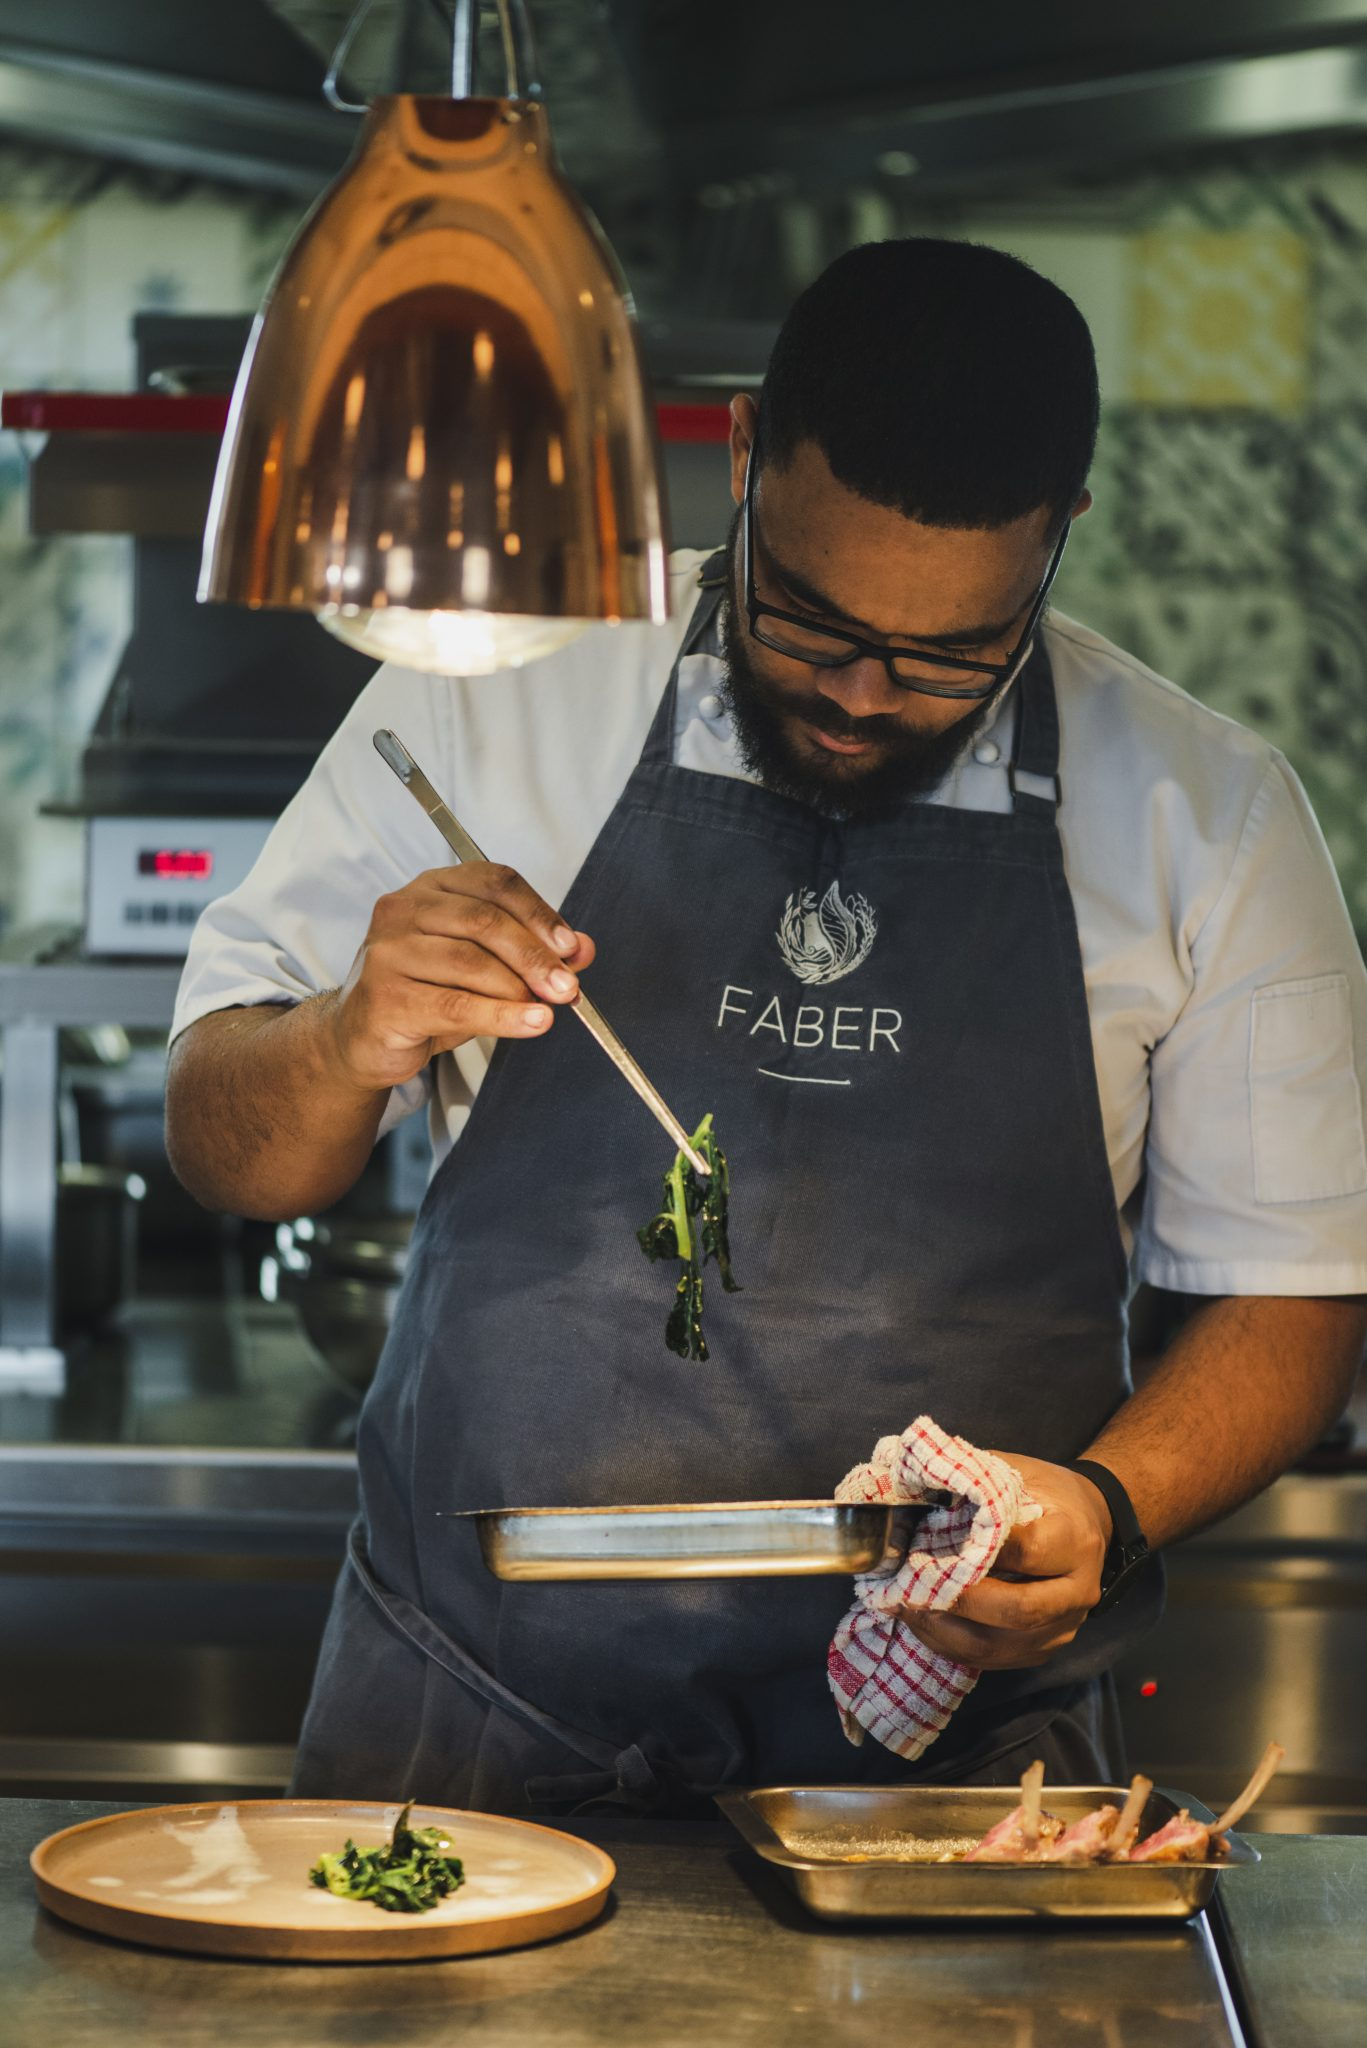 FABERfood chef Dale Stevens working his magic in the kitchen, Avondale, Sonia Cabano blog eatdrinkcapetown